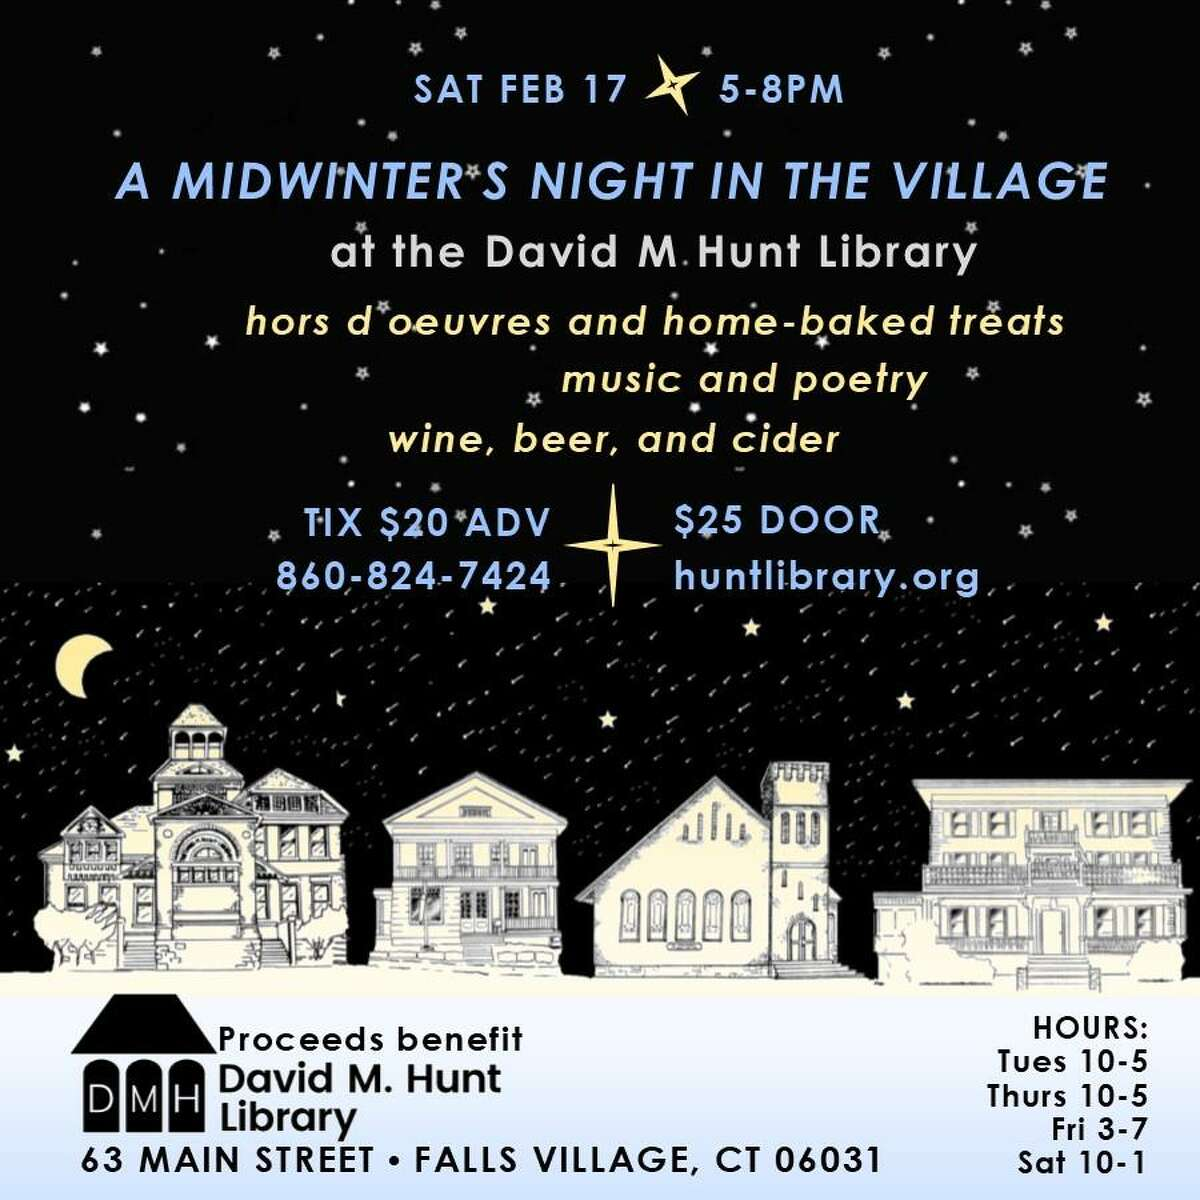 The David M. Hunt Library wil hold its annual midwinter fundraiser on Feb. 17.